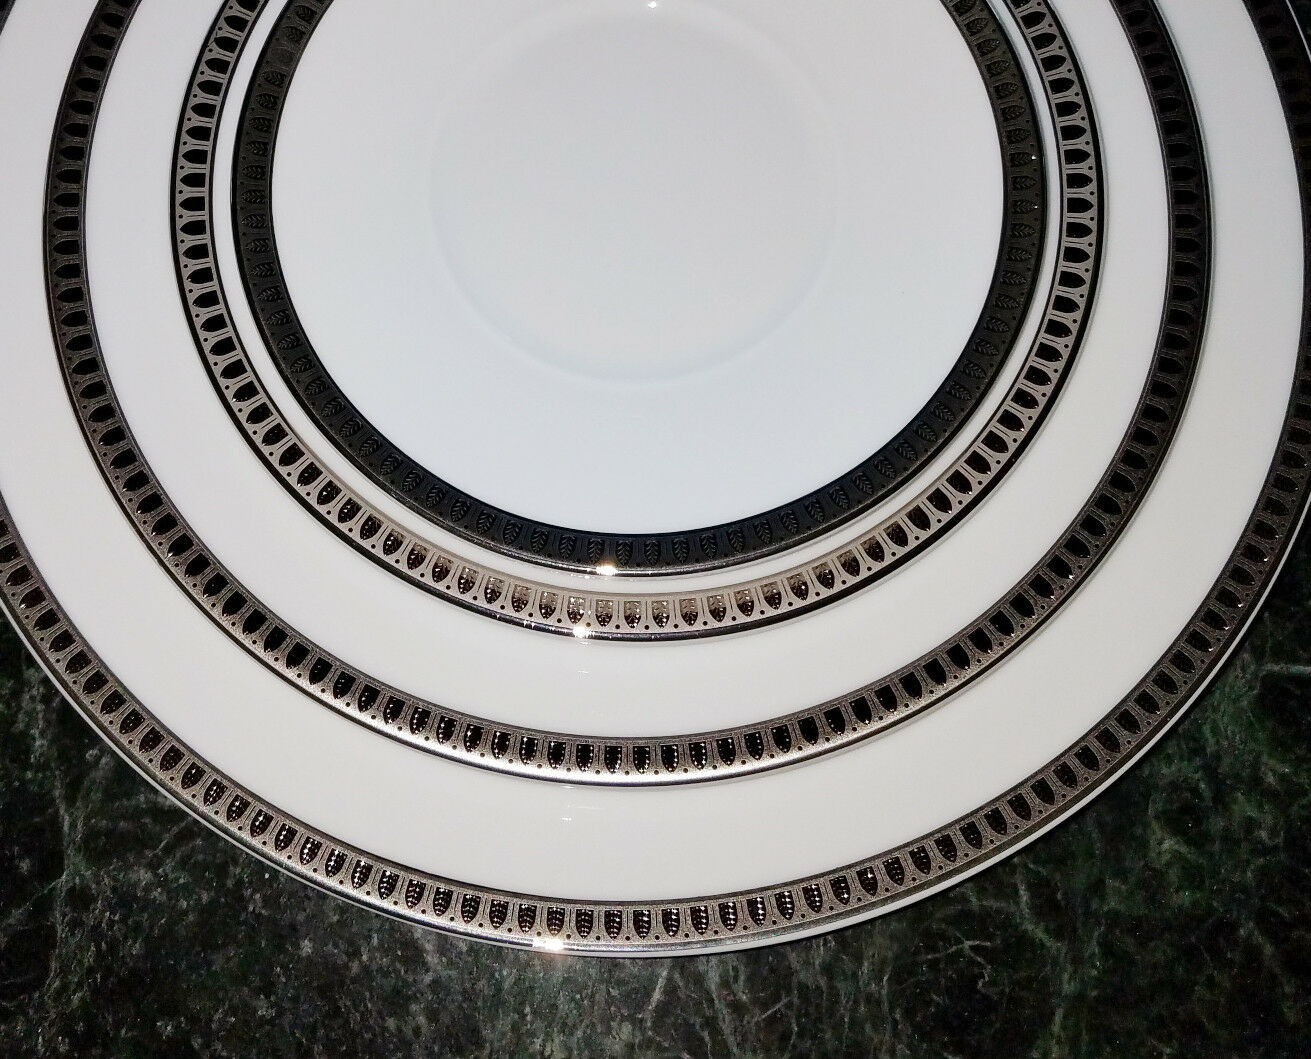 CHRISTOFLE MALMAISON Platine 4 pièces Place Setting Plate Set-New in Box